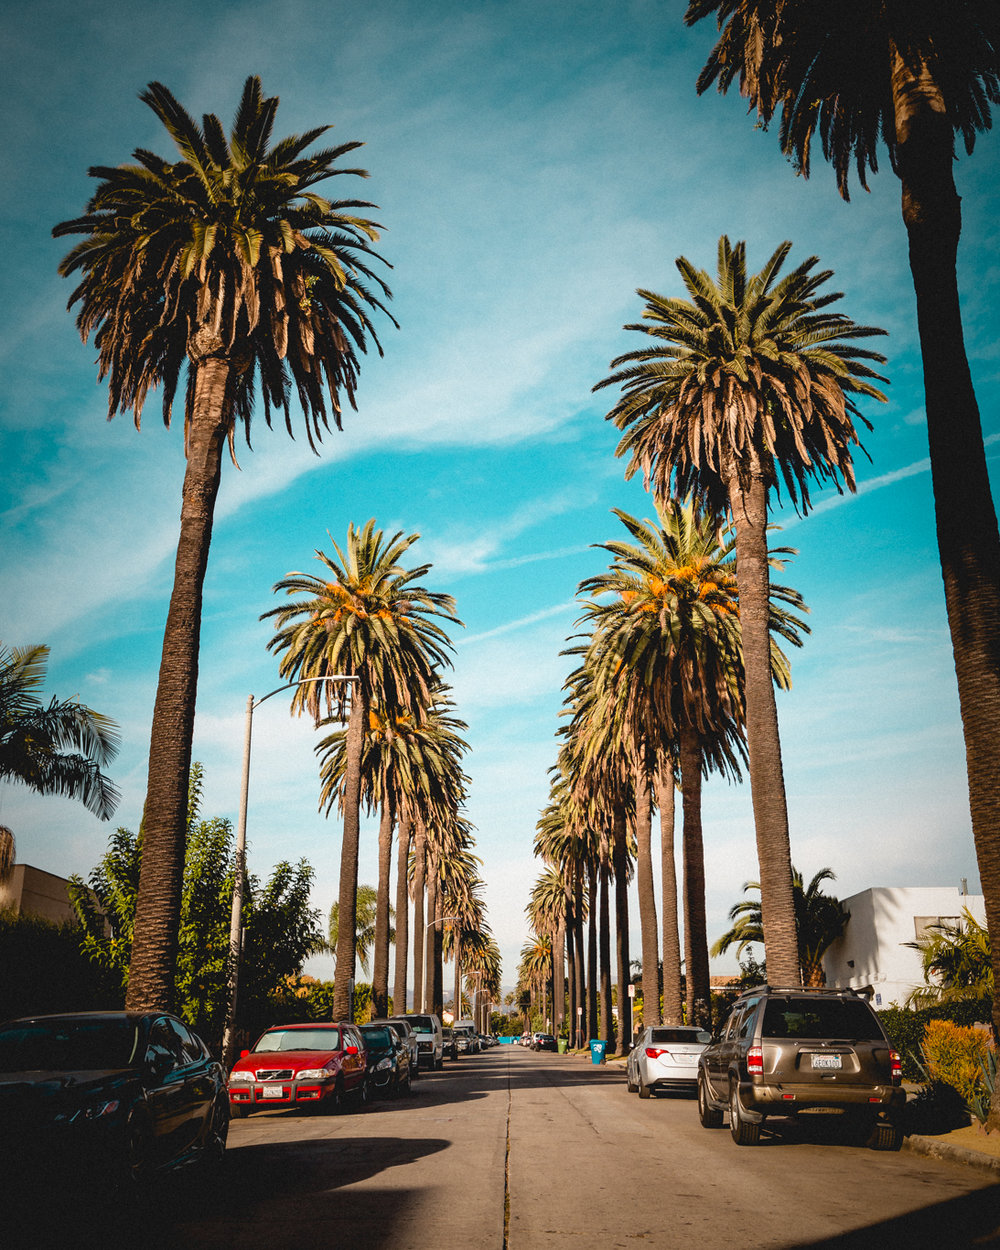 los-angeles-palm-trees-la